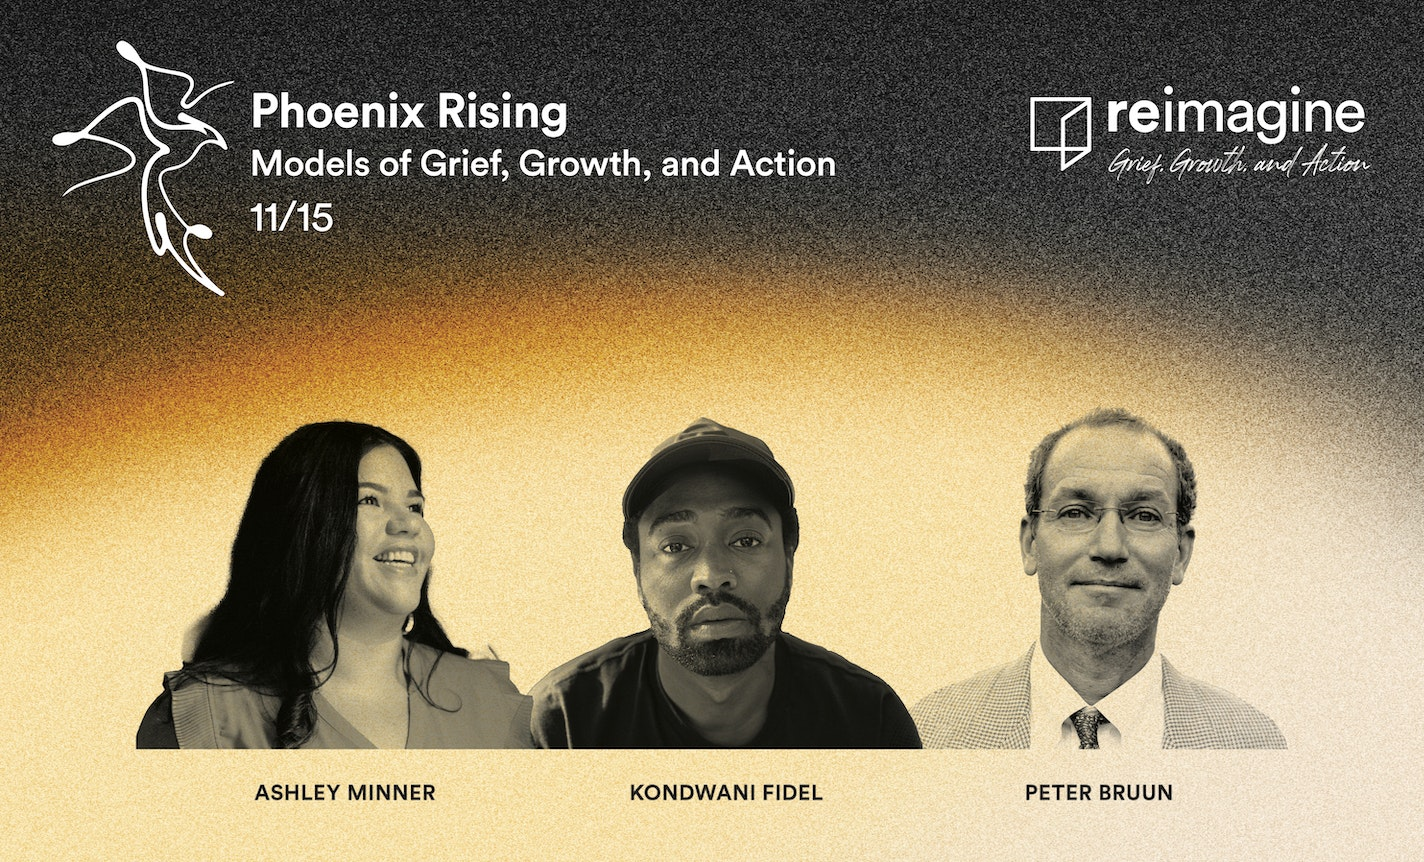 Phoenix Rising: Models of Grief, Growth, and Action